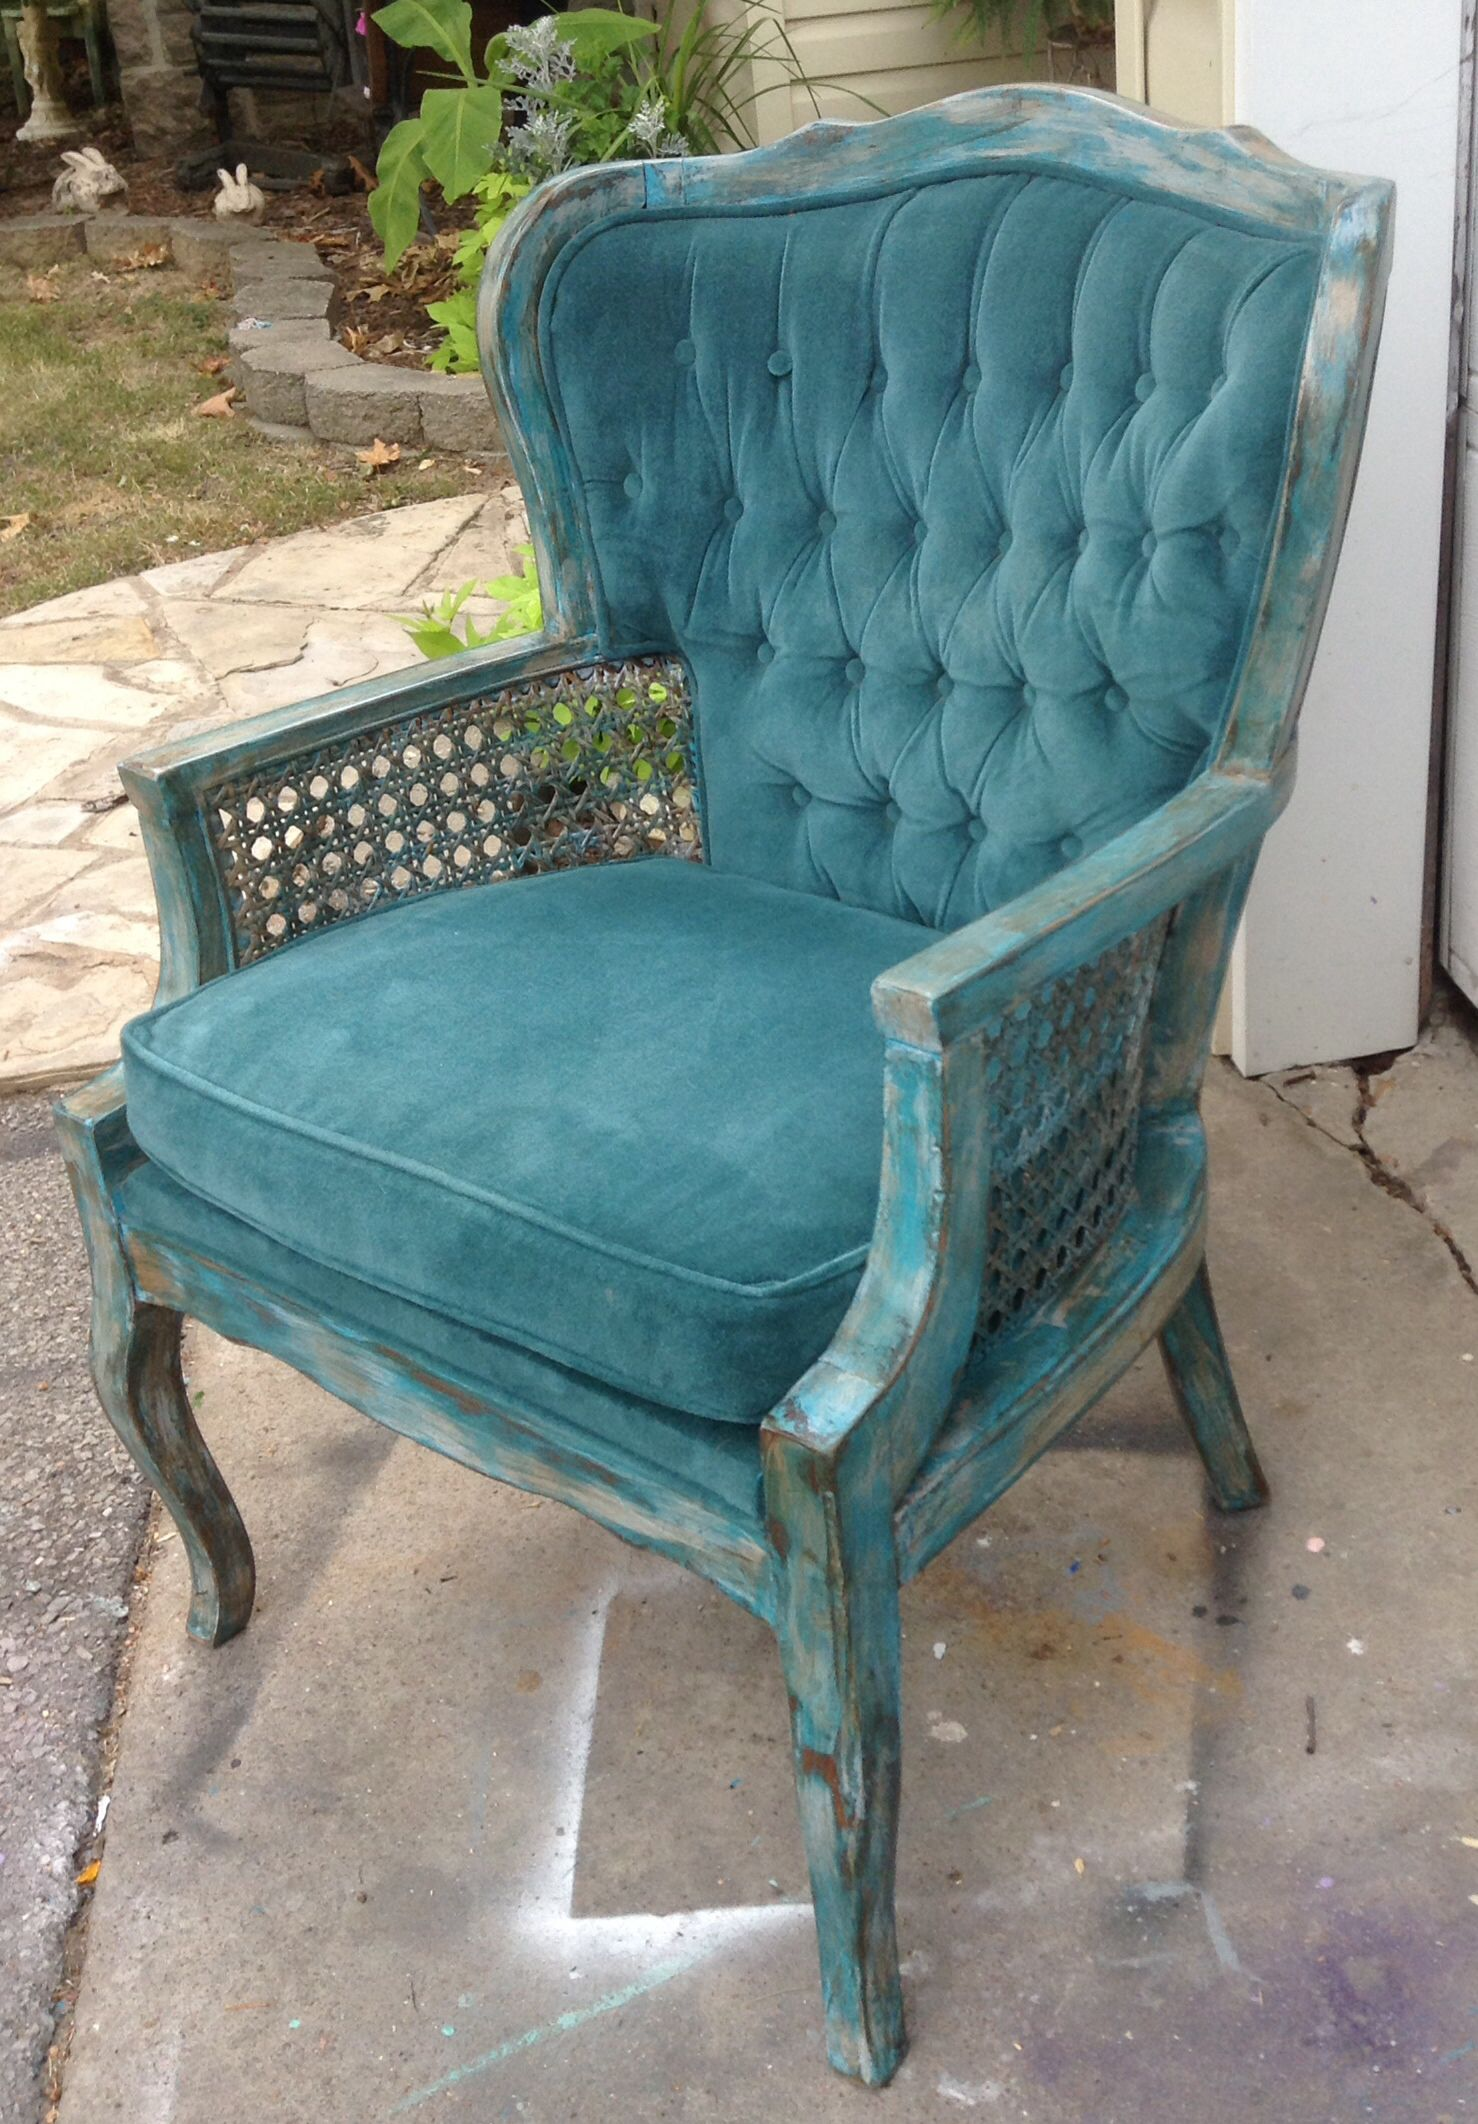 Awesome Turquoise Cane Chair Custom Redesigned Pieces Turned Into A Shabby Chic  Chair